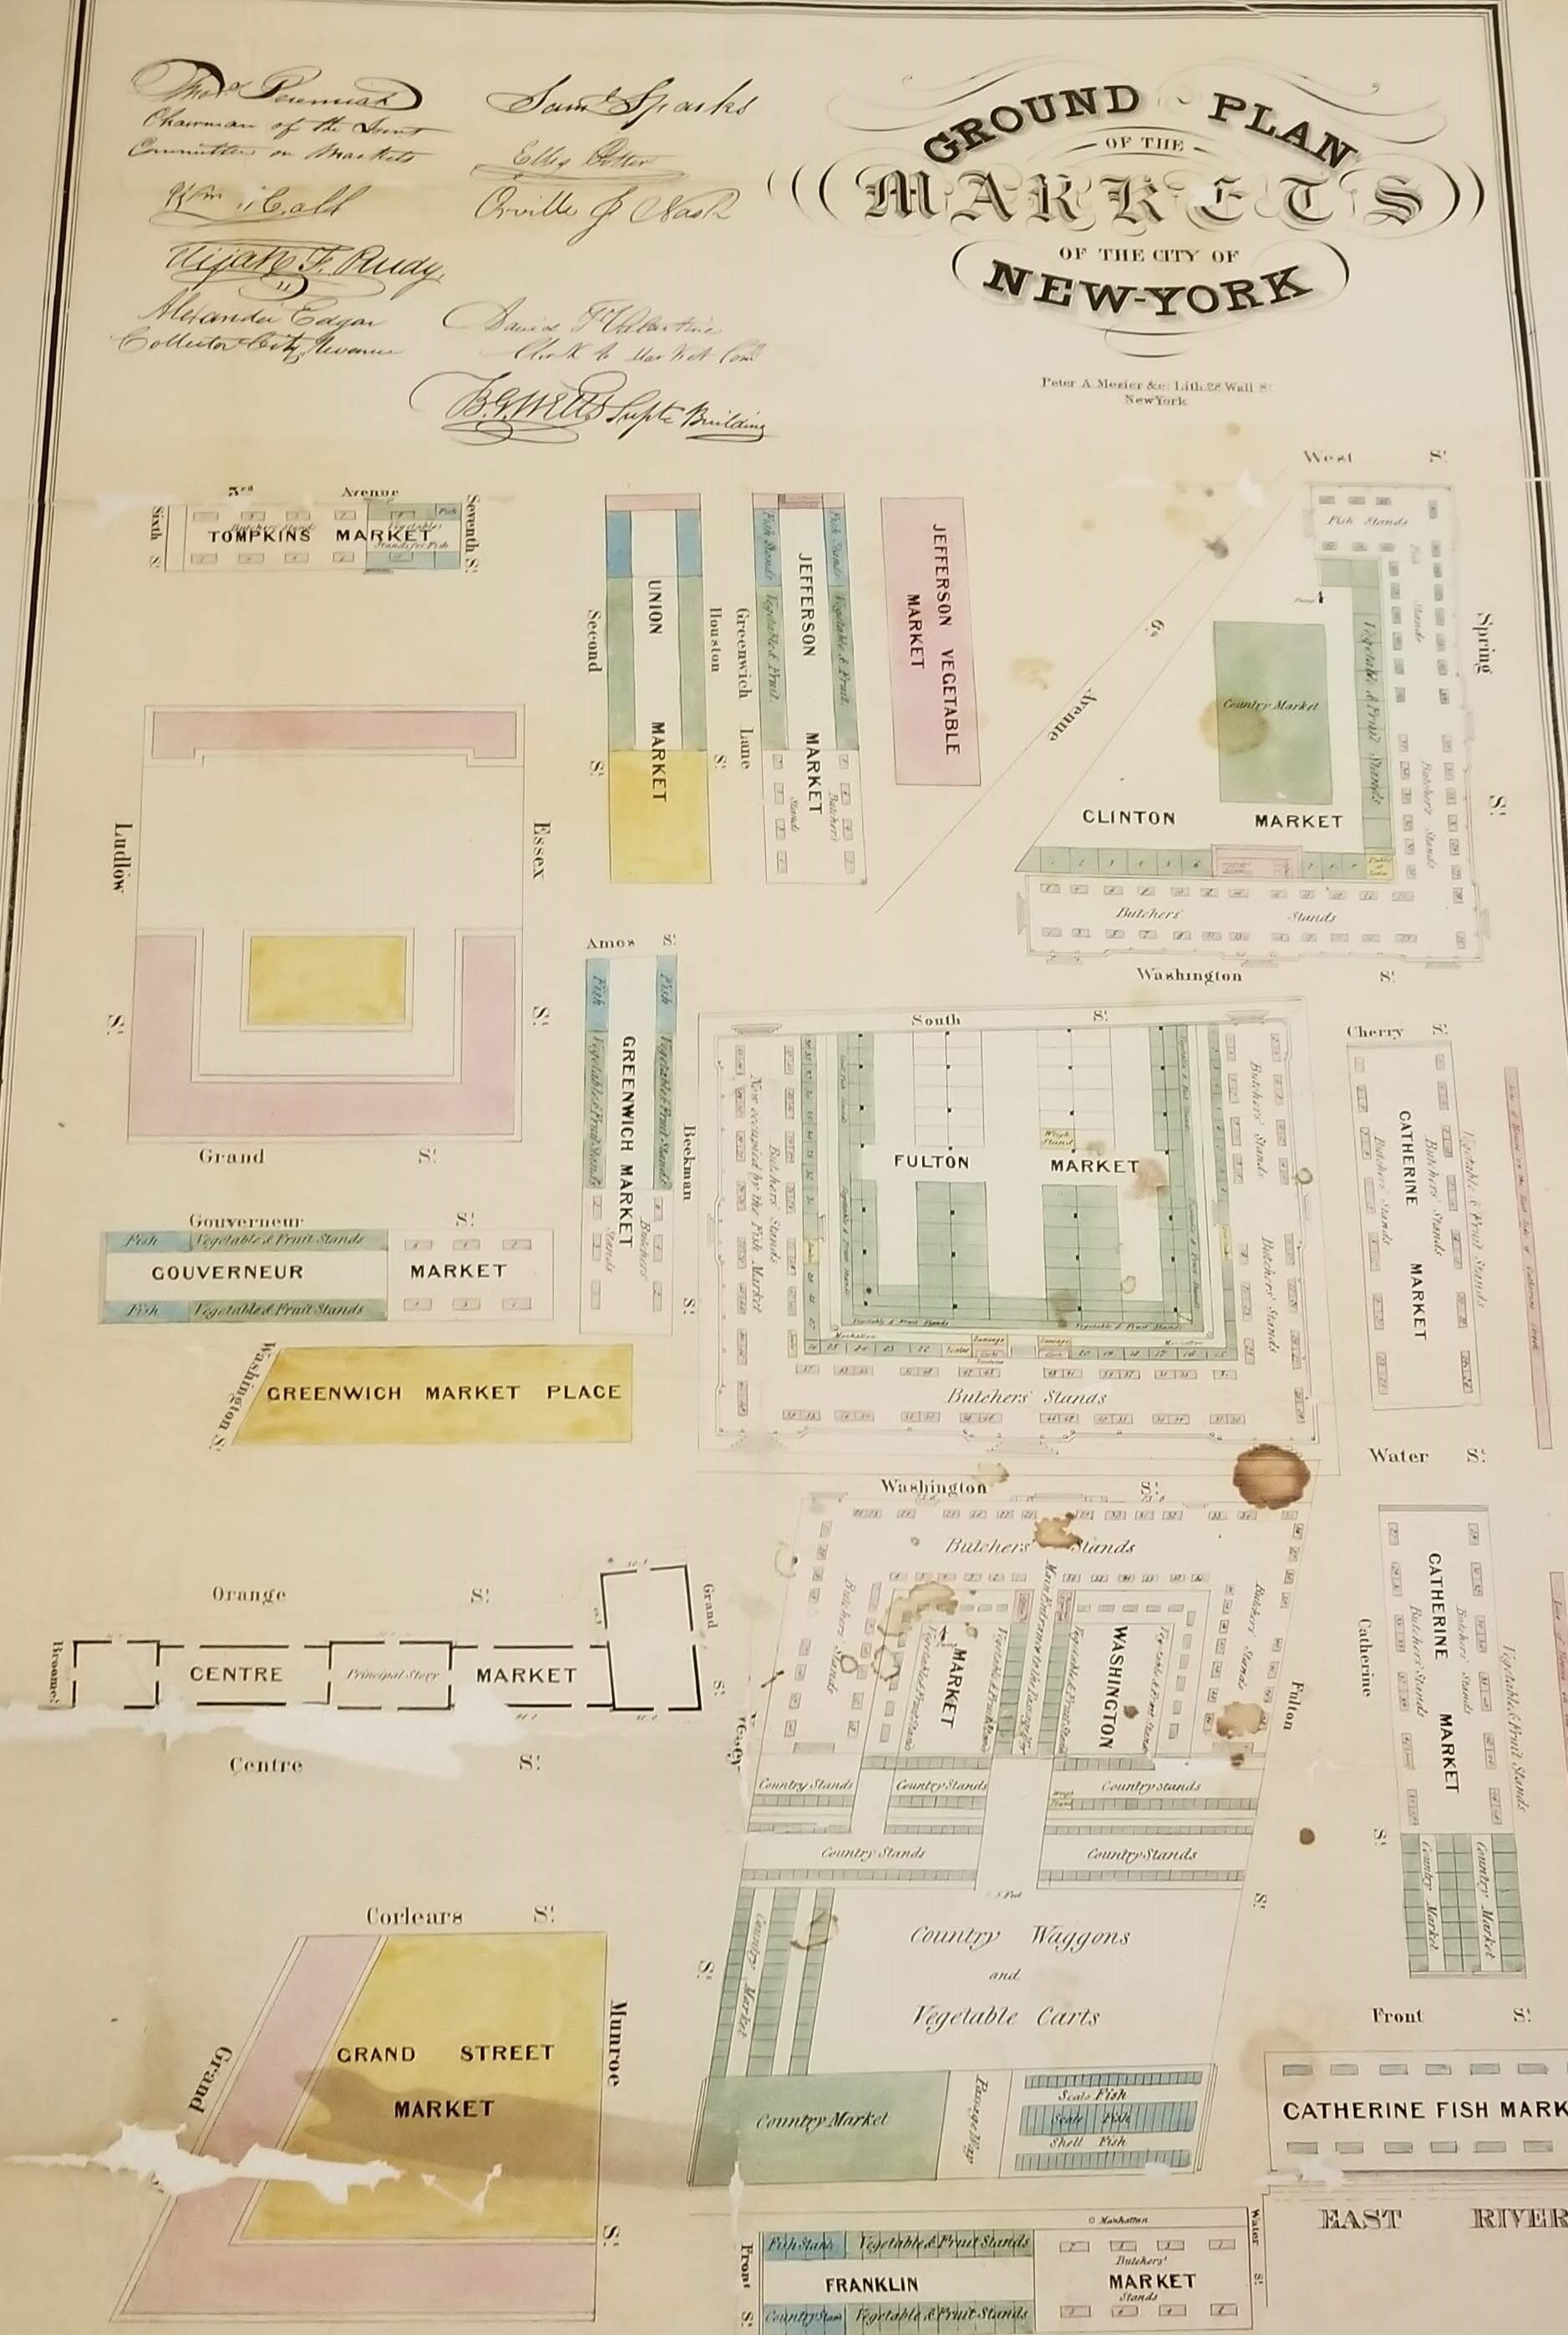 Ground Plan of the Markets of the City of New York, undated. Common Council, NYC Municipal Archives.